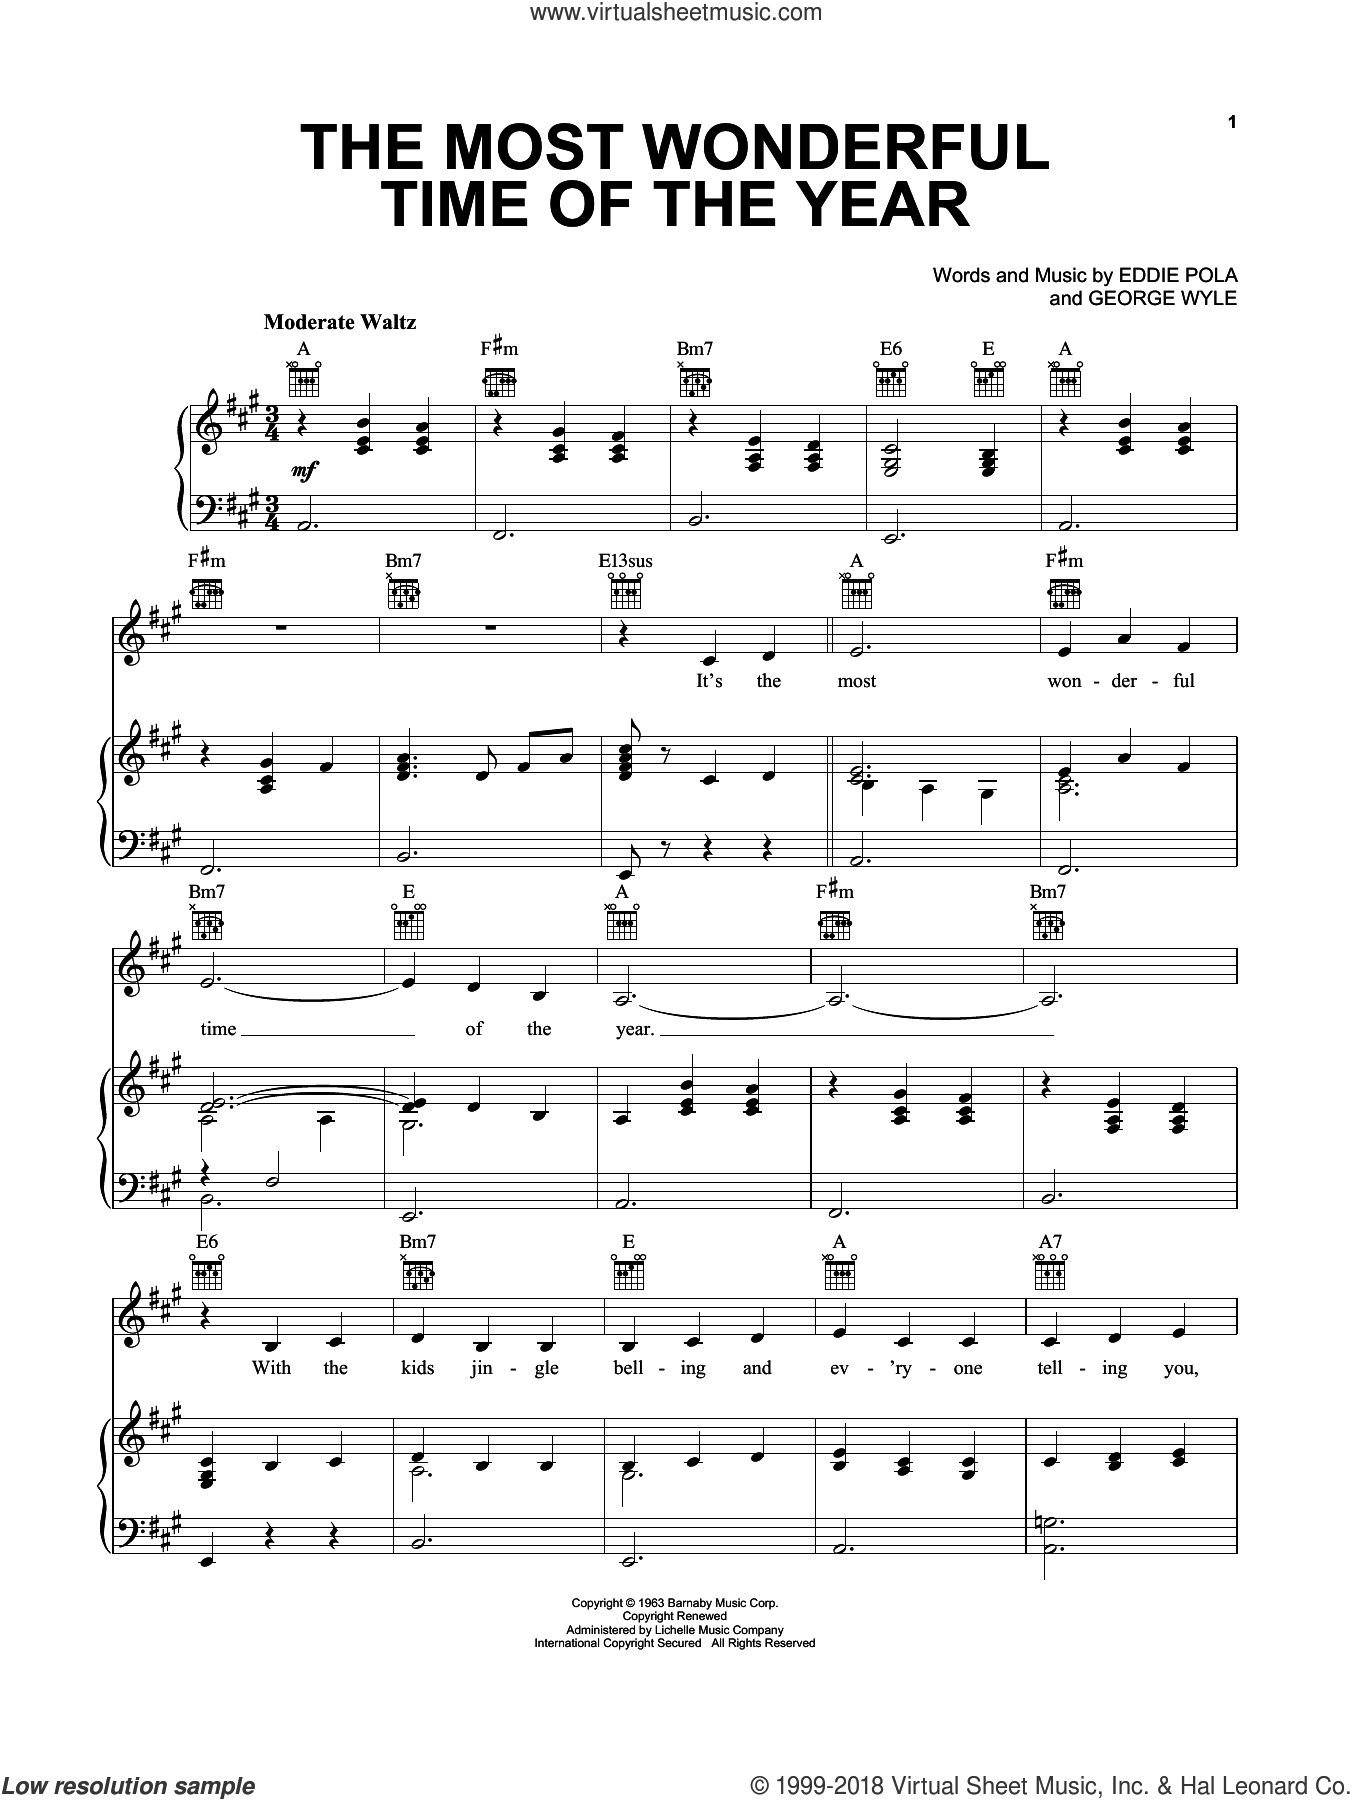 The Most Wonderful Time Of The Year sheet music for voice, piano or guitar by Pentatonix, Eddie Pola and George Wyle. Score Image Preview.